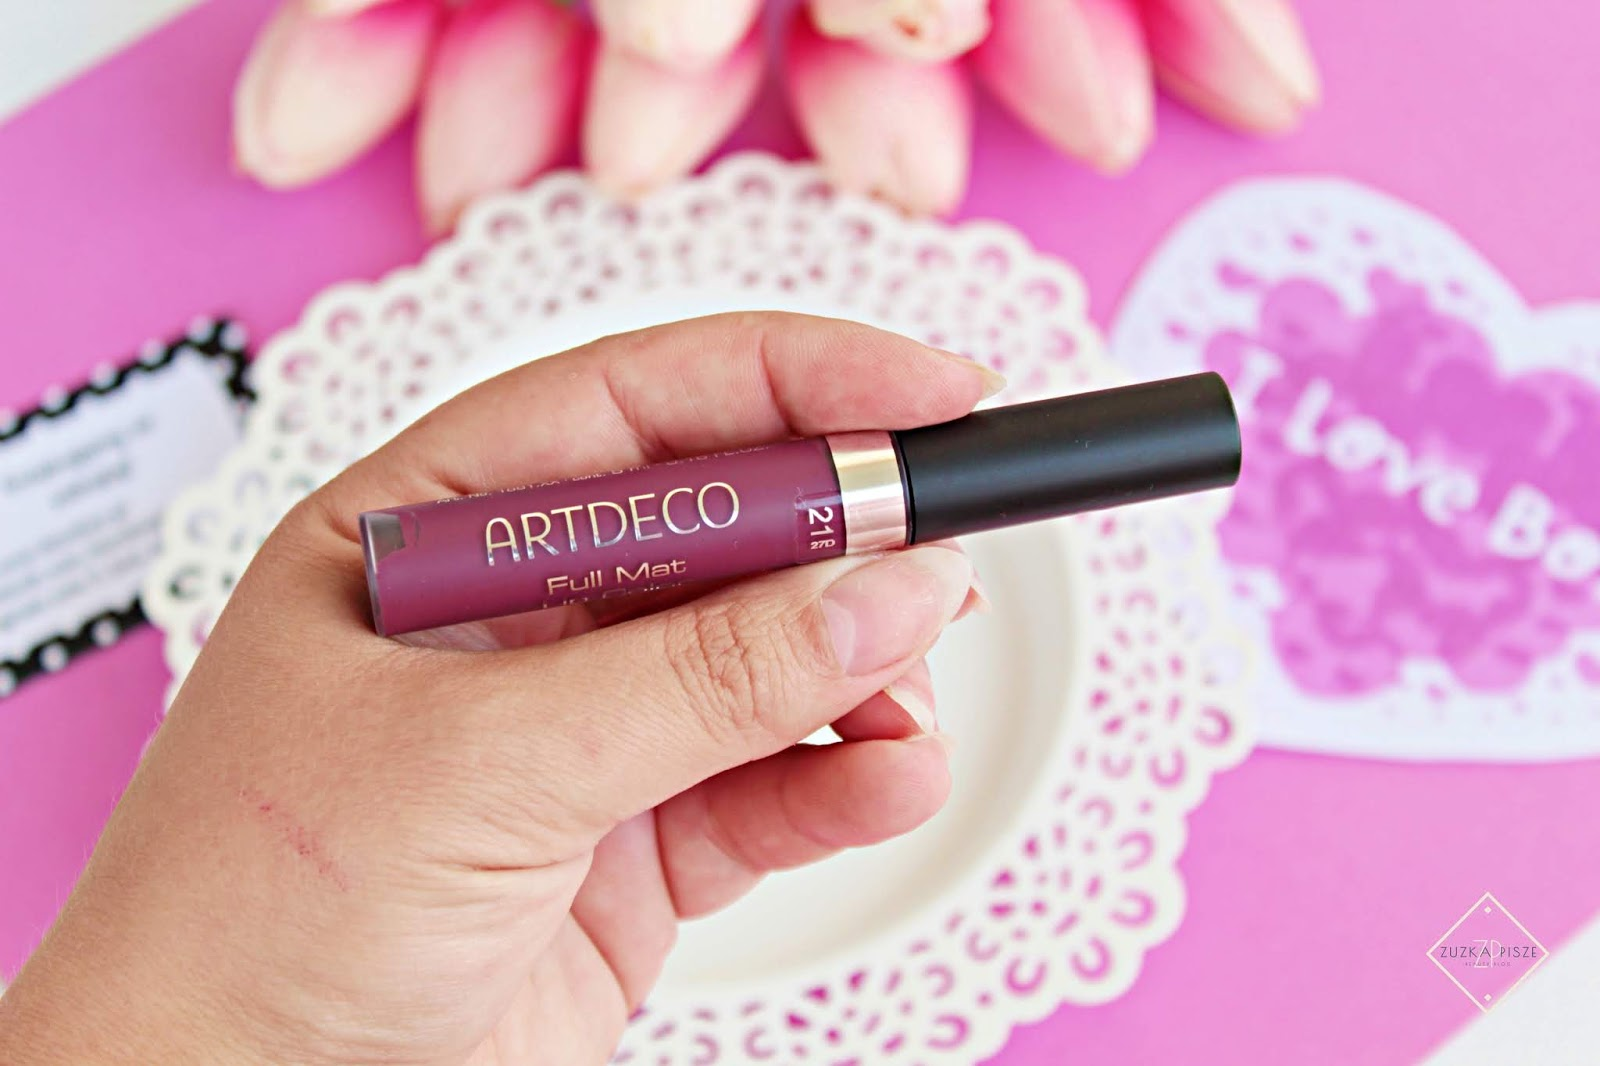 ARTDECO Full Matt Lip Color